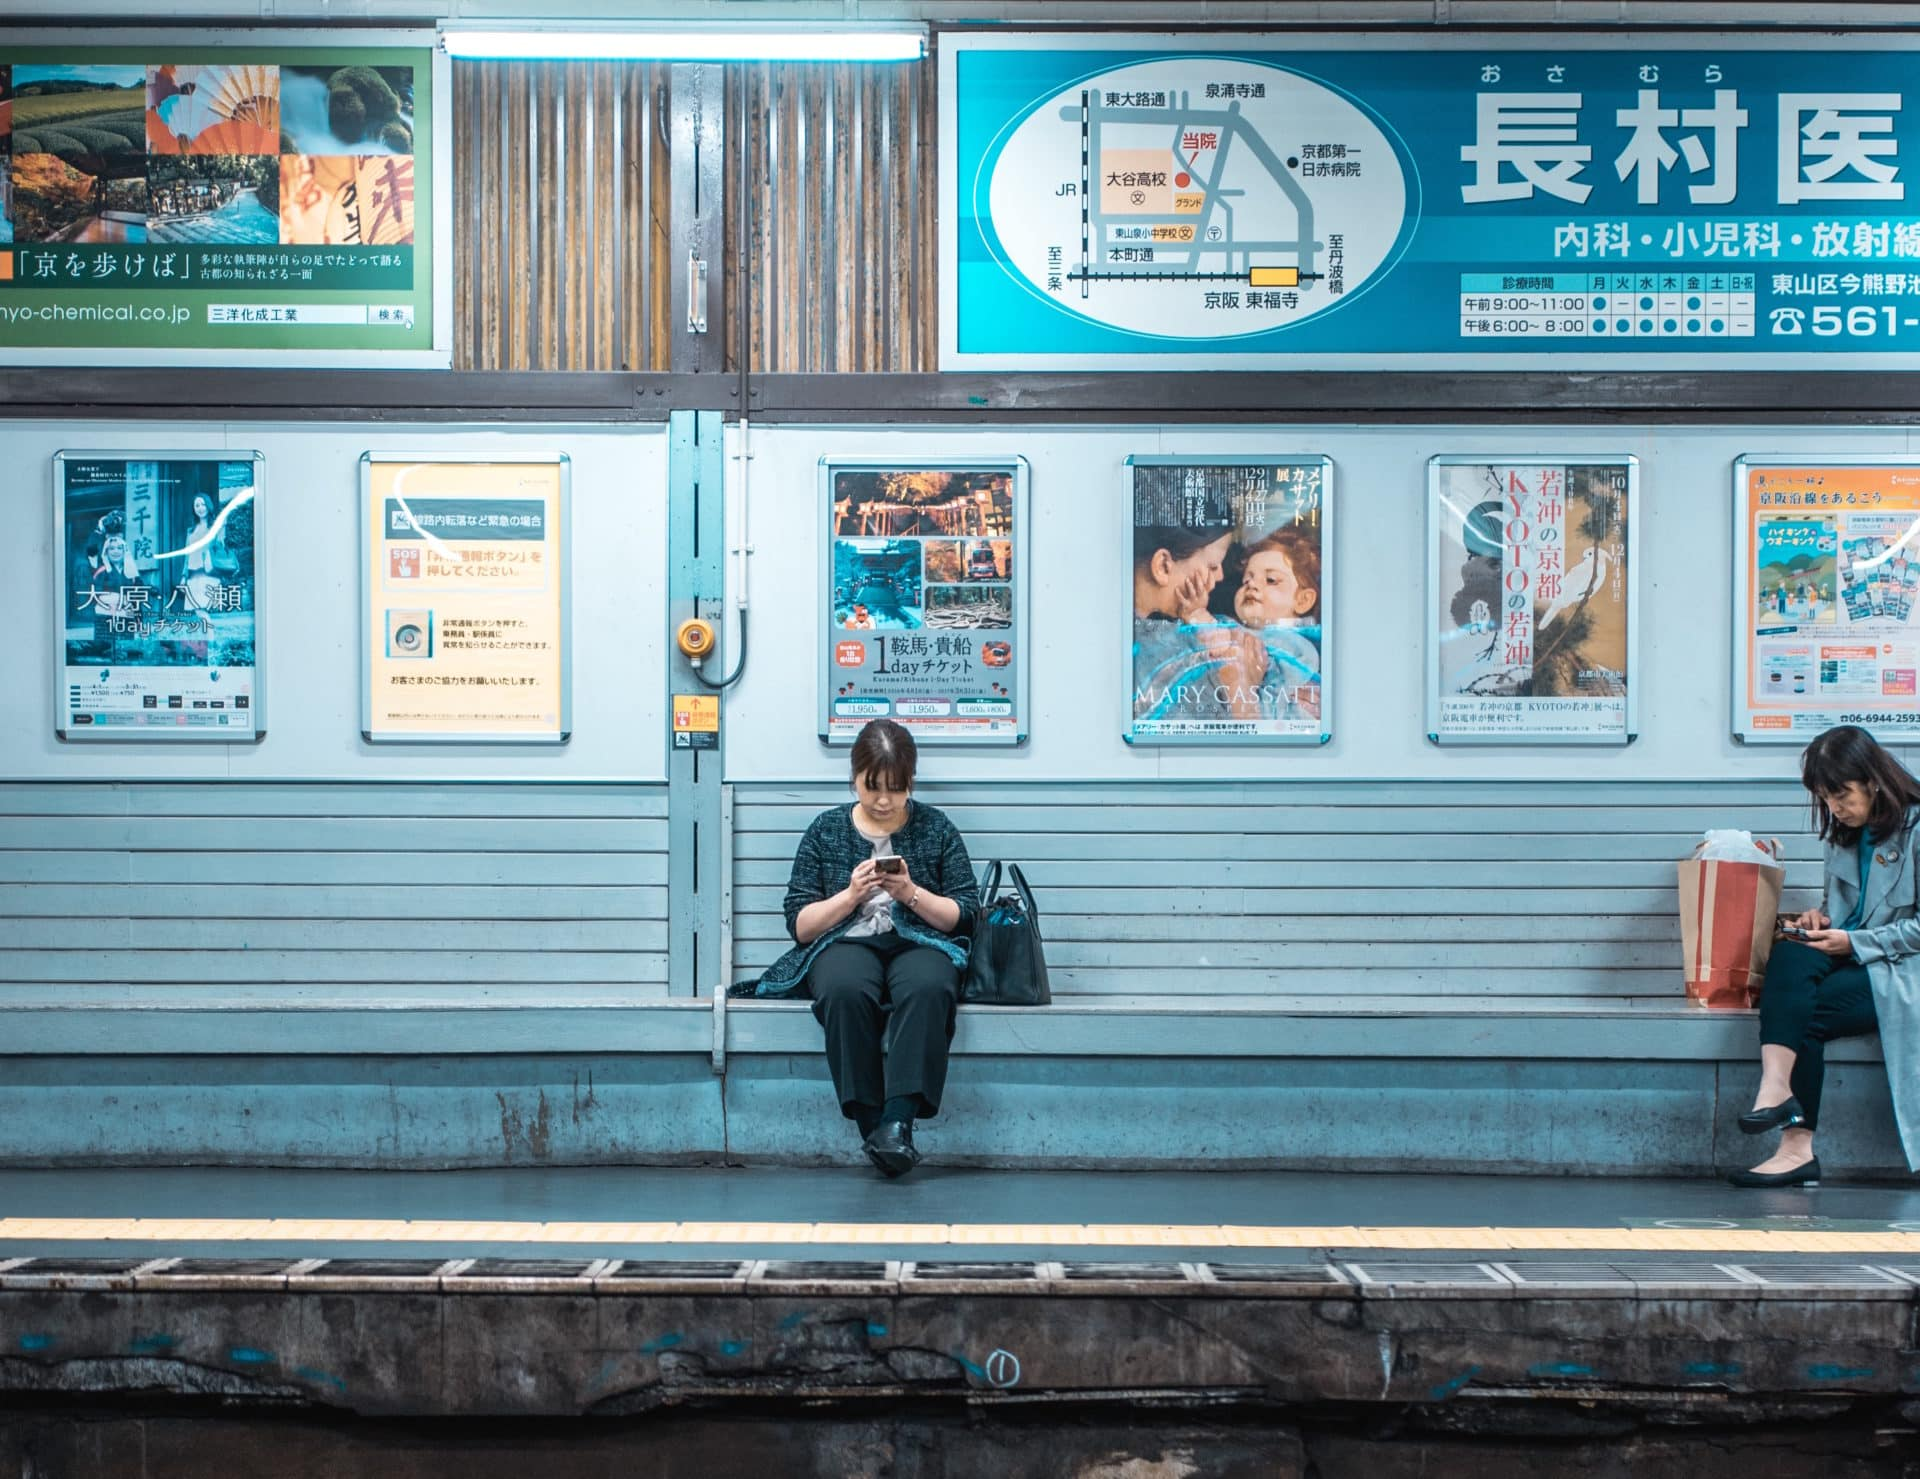 A person sitting on a bench at a train station in Japan.